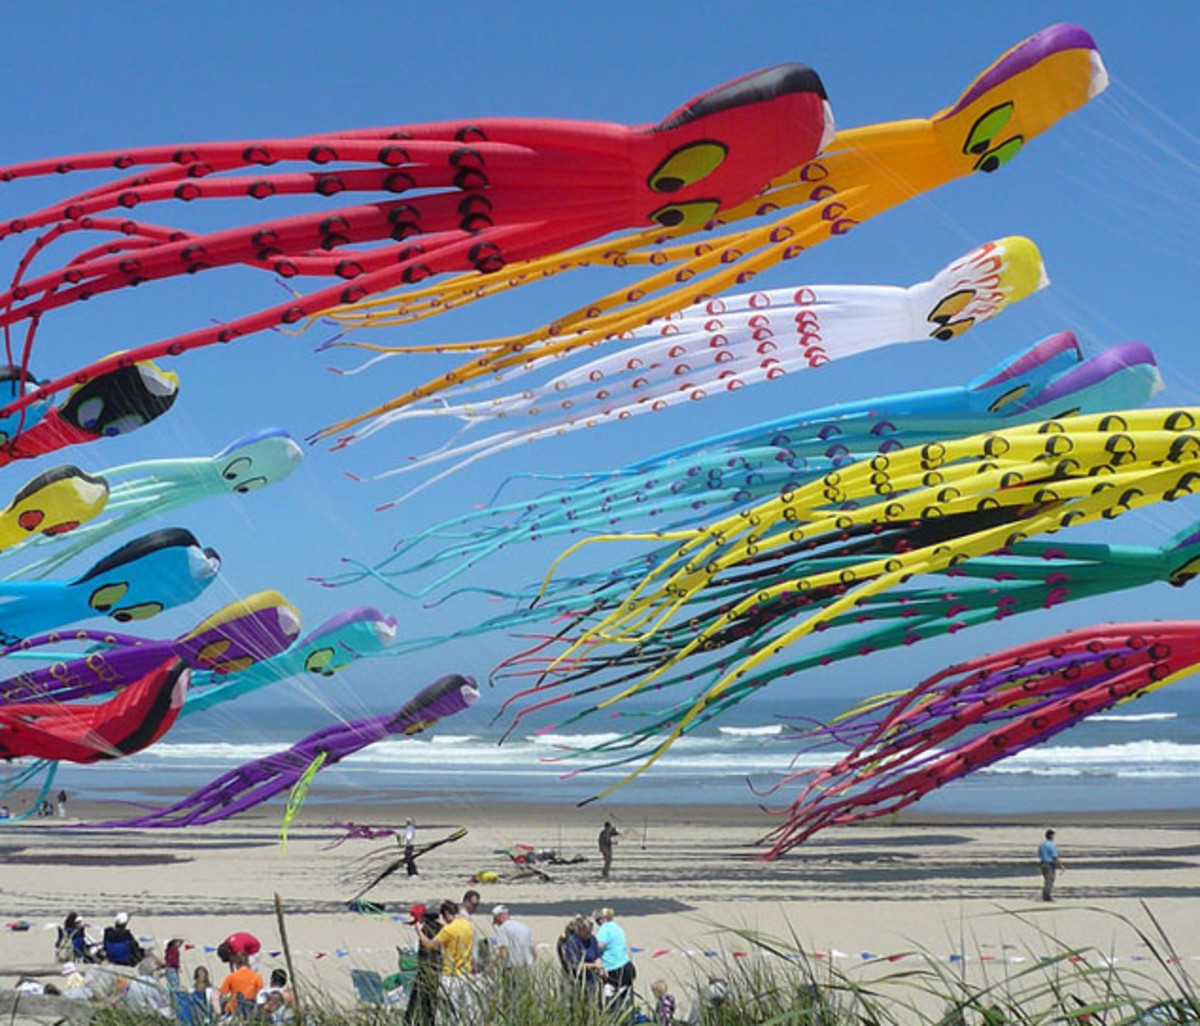 Octopile at Lincoln City Kite Festival.